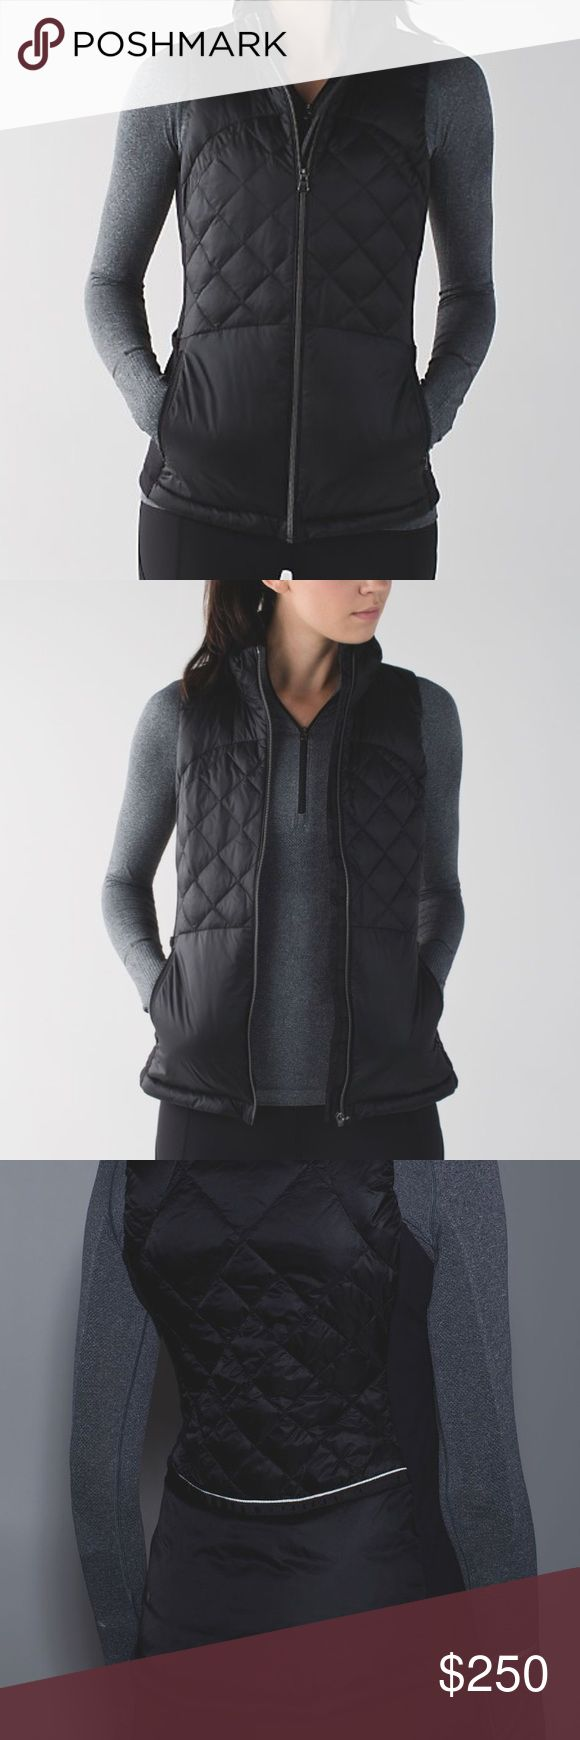 Lululemon down for a run vest Run from morning to night—this lightweight, slim-fitting vest is perfect for transitional weather. ultra lightweight Glyde Light fabric is wind- and water-resistantsoft, sweat-wicking Rulu™ fabric side panels have added LYCRA® fibre so you can move freelysecure pockets and media pocket with cord exitside slip pockets to stash gloves and hat mid-runreflective details help keep you bright in low lightimporteddesigned for: runfabric(s): Glyde Light, Rulu™ color…